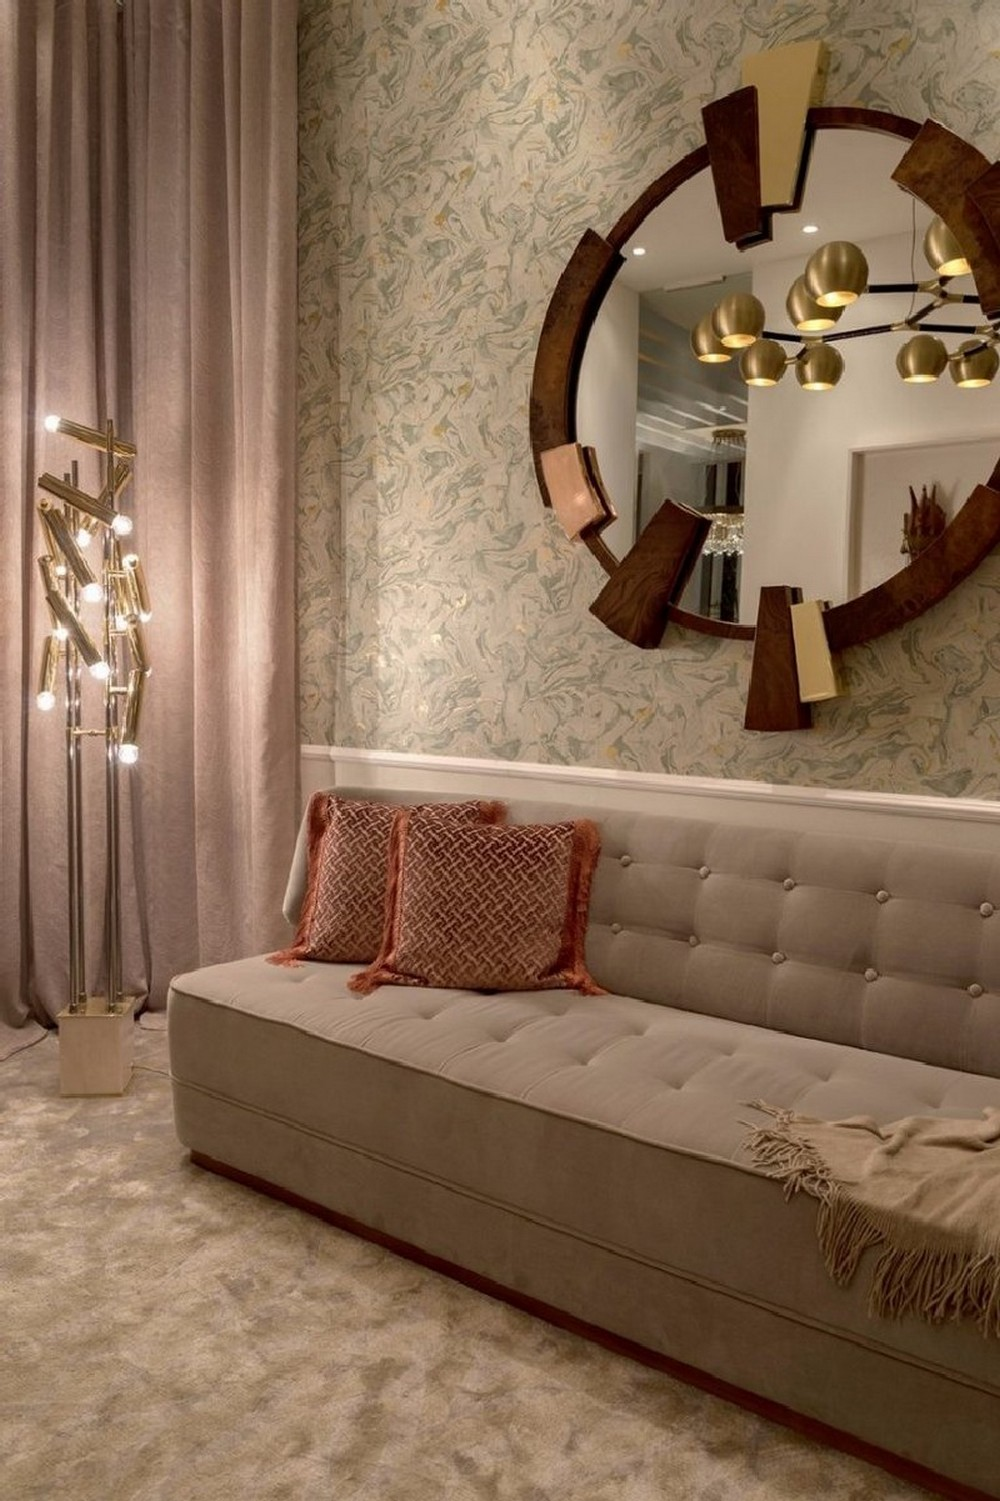 CovetED Shows The New Trendy Furniture Designs For Your Home Decor Trendy Furniture Designs CovetED Shows The New Trendy Furniture Designs For Your Home Decor CovetED Shows The New Trendy Furniture Designs For Your Home Decor 2 1